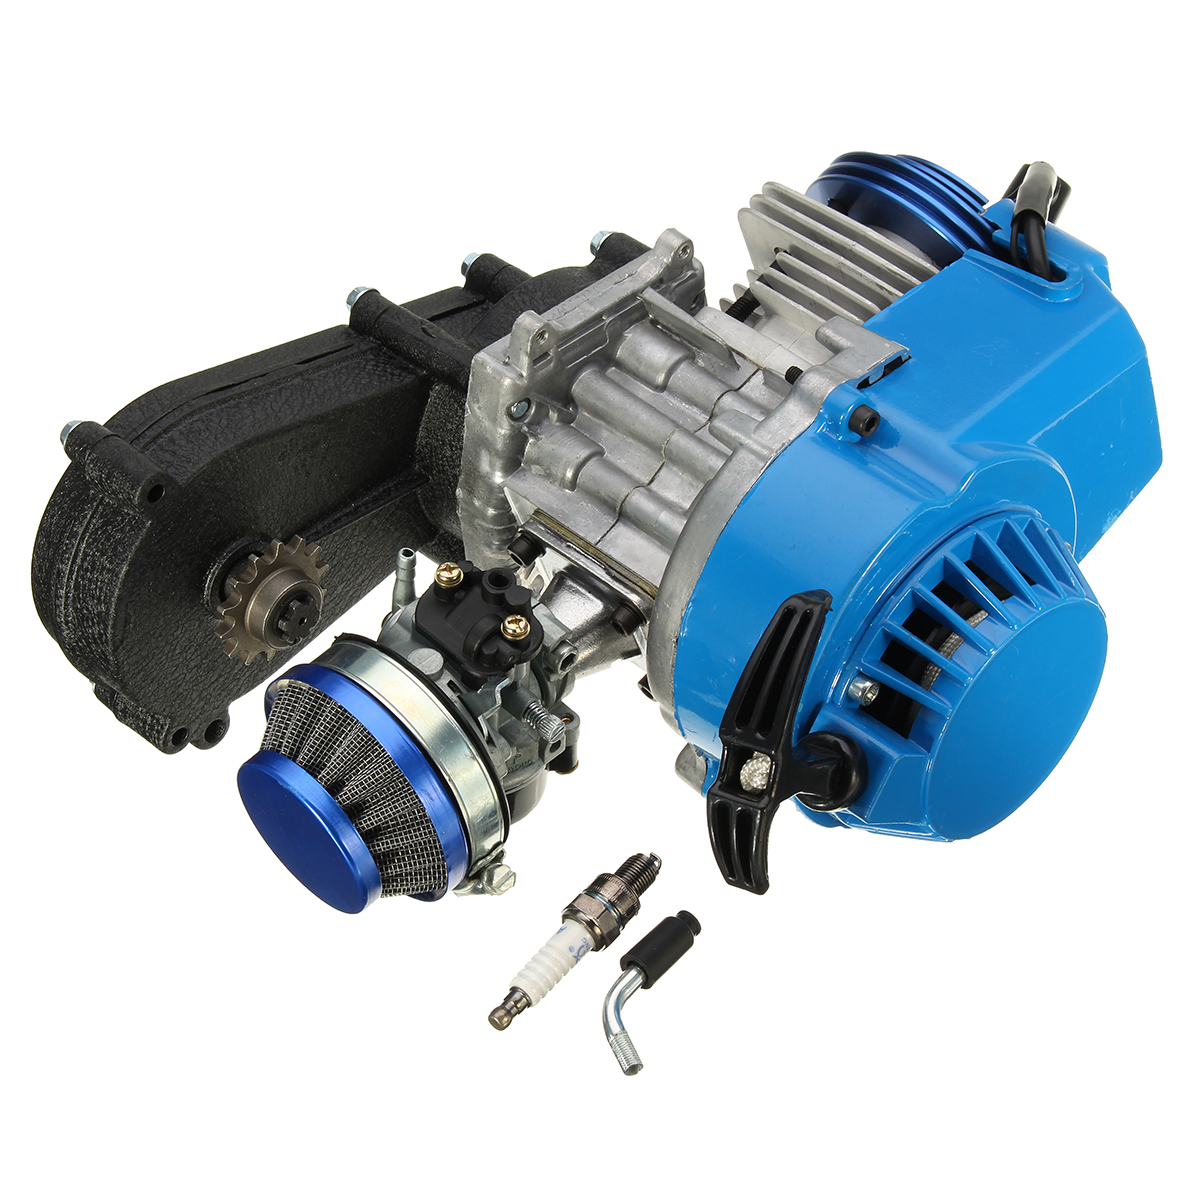 20% off only for Stroke Engine Motor